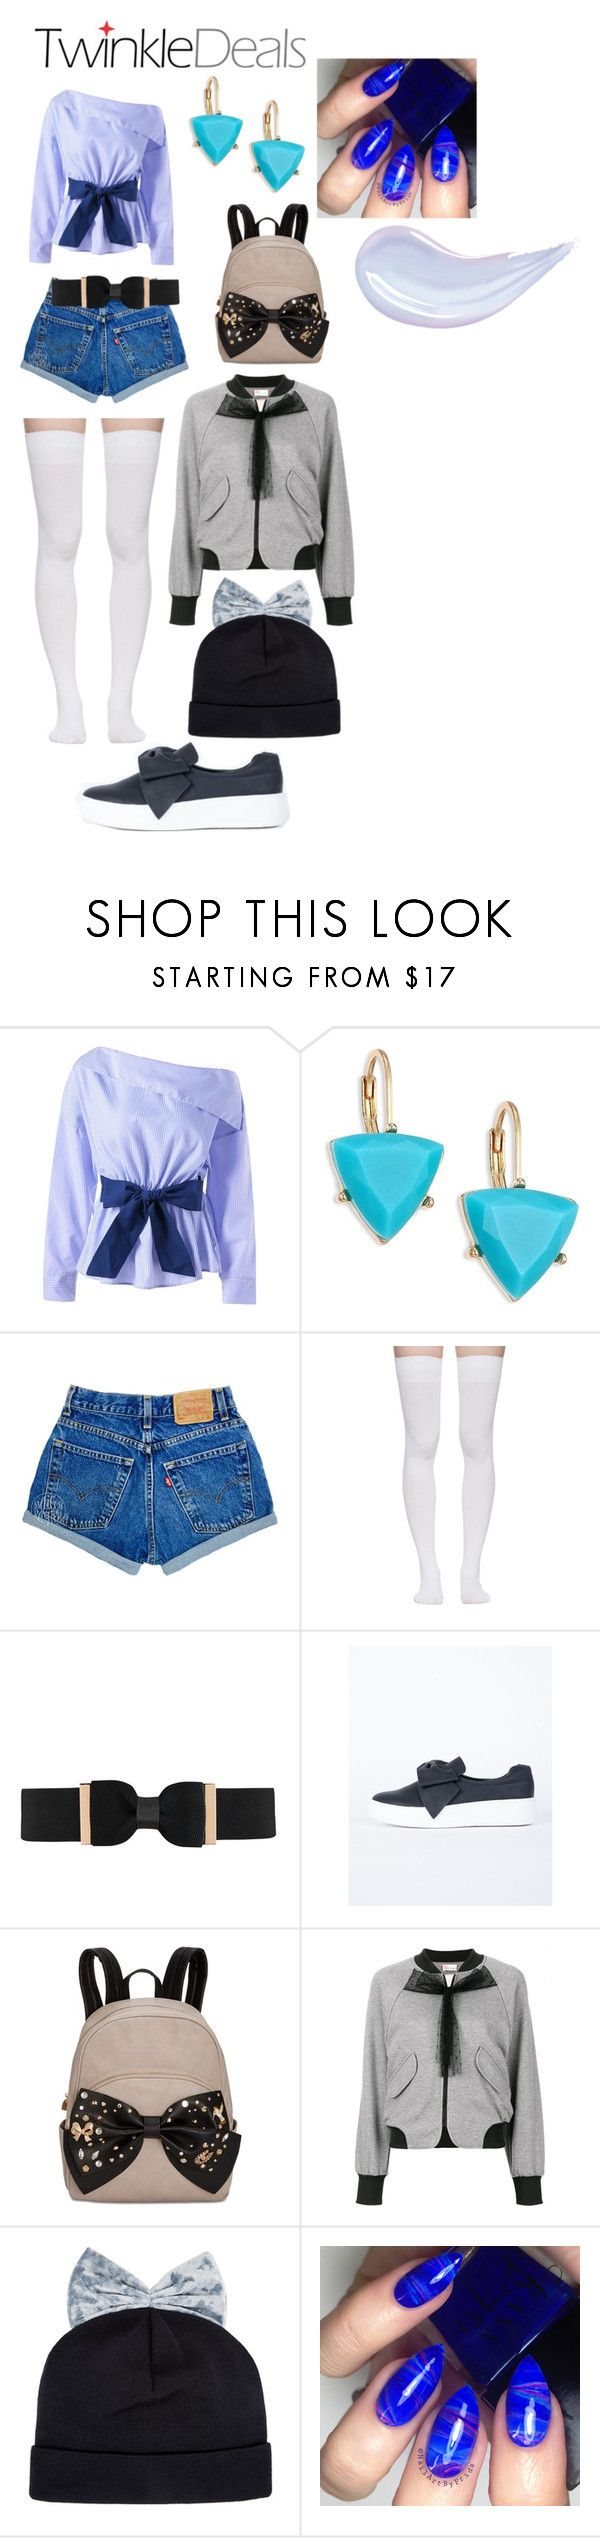 """""""bow"""" by crythin on Polyvore featuring ABS by Allen Schwartz, Marieyat, City Chic, Betsey Johnson, RED Valentino and Federica Moretti"""